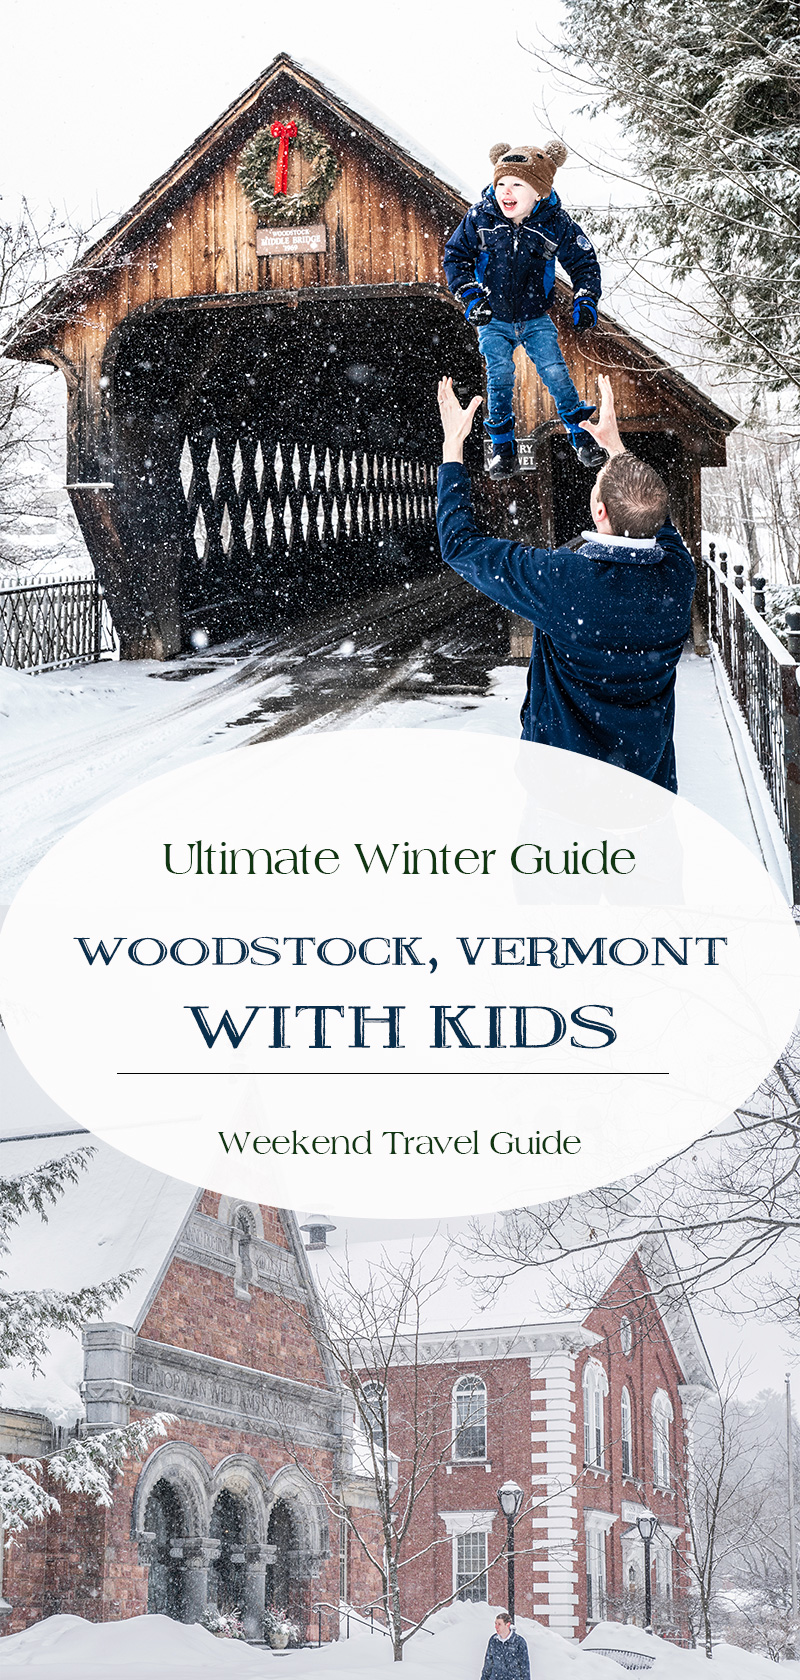 Ulimtate-Winter-Guide-to-Woodstock-Vermont-with-Kids-Family-Weekend-Travel-Guide